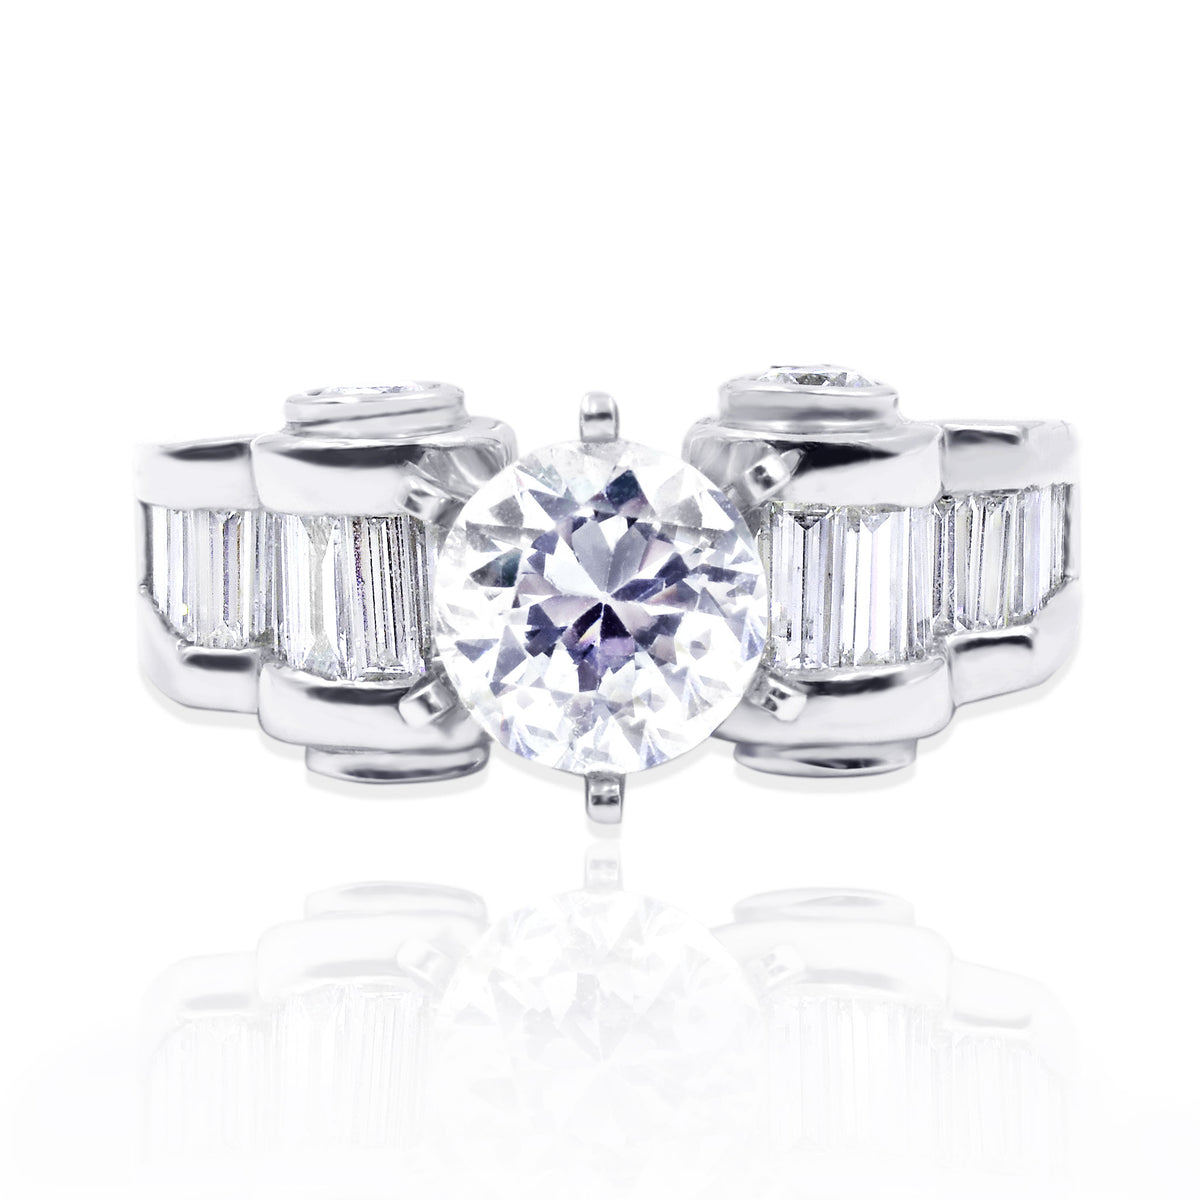 Platinum Baguette and Round Brilliant Cut Diamond Ring Mounting